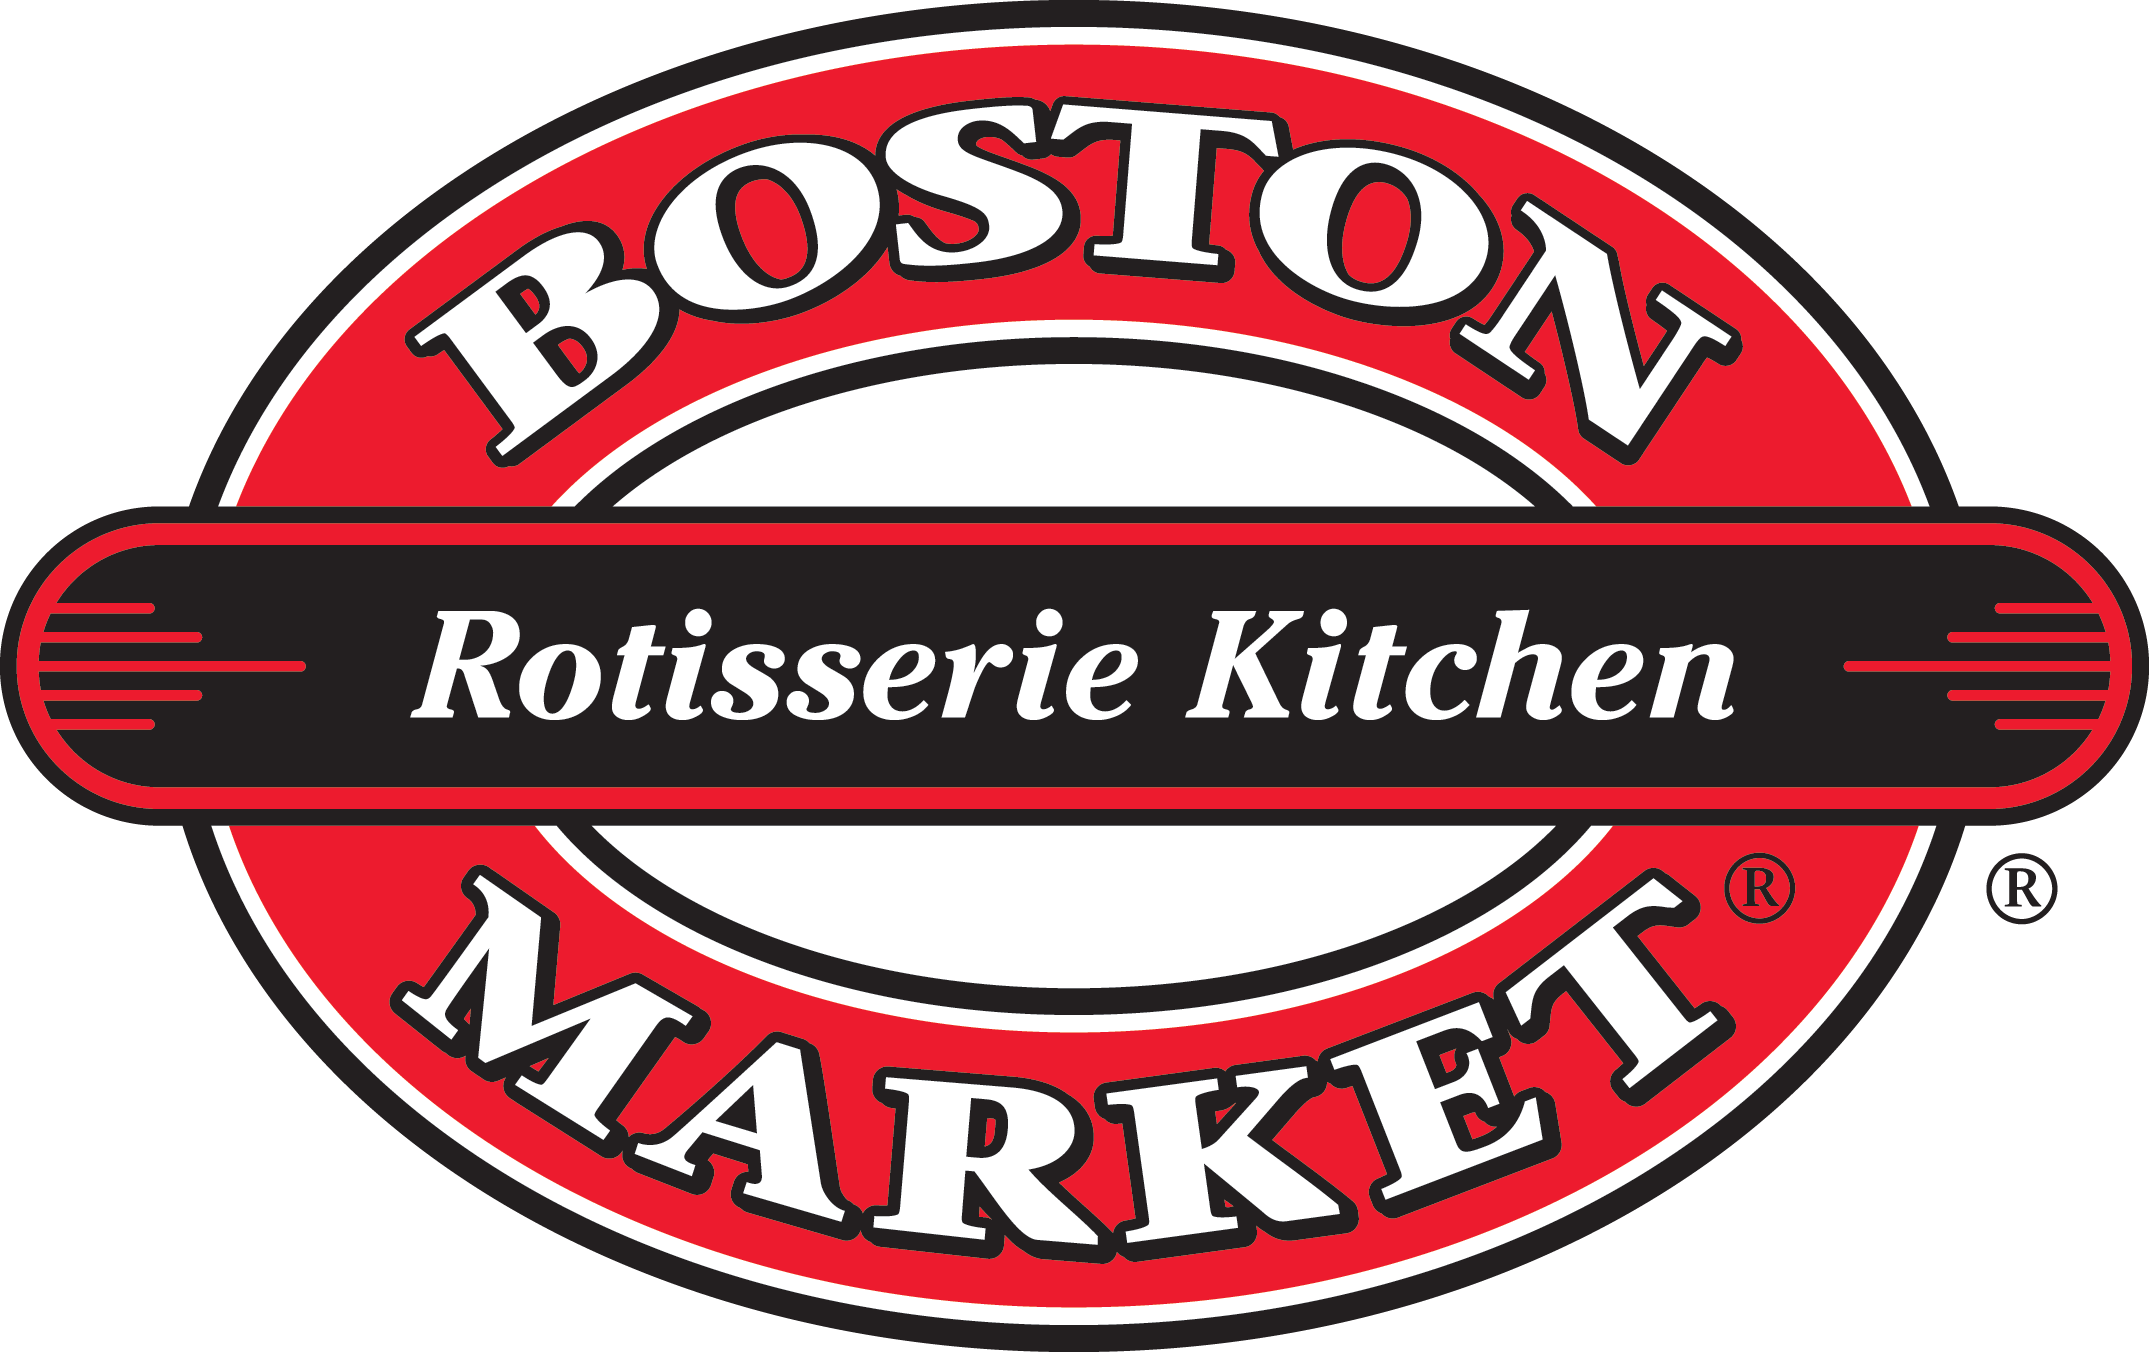 Boston Market Home